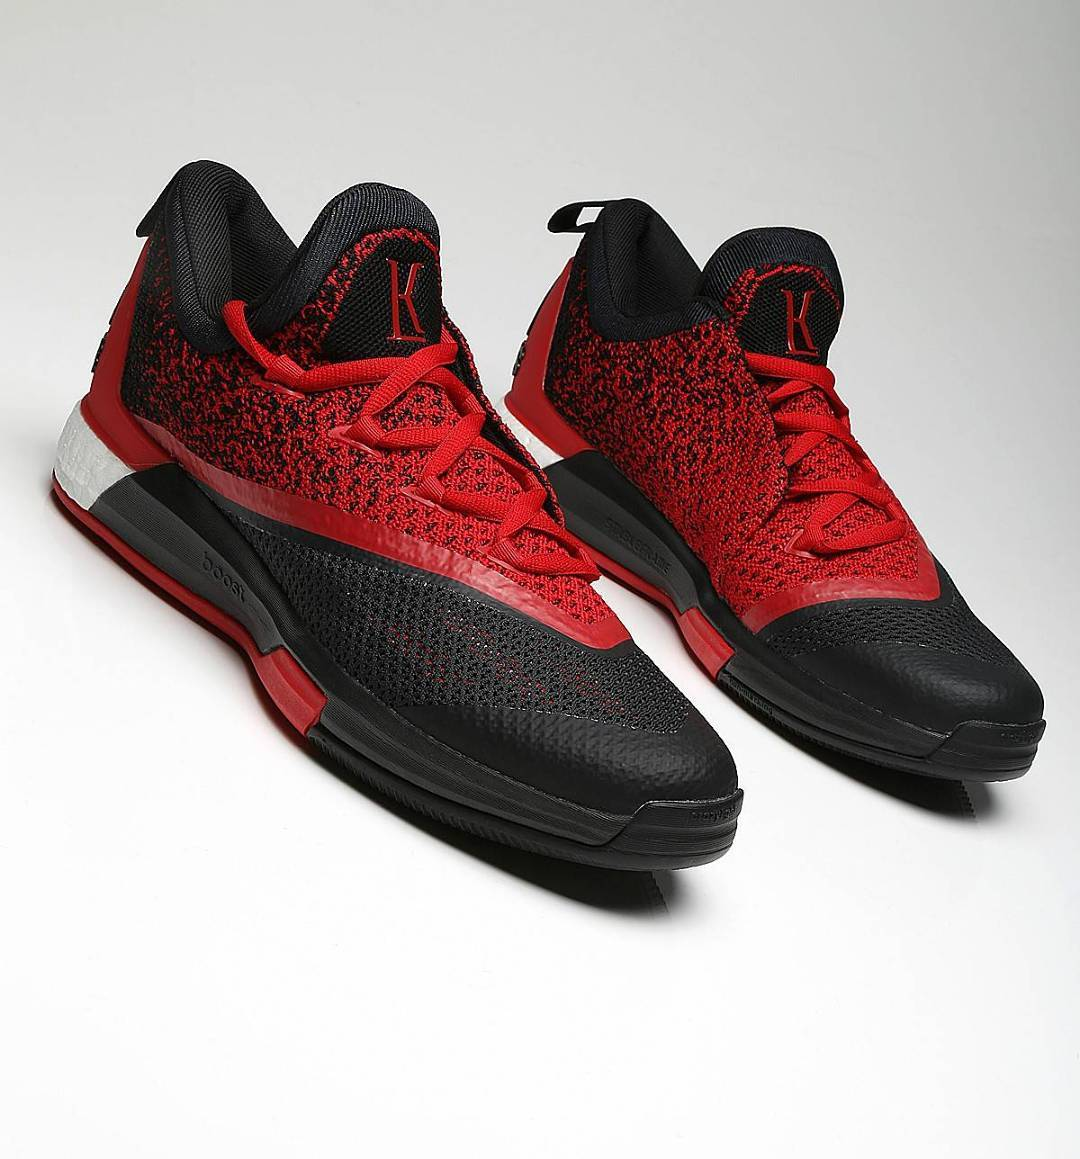 james harden crazylight boost 2 5 pe archives weartesters. Black Bedroom Furniture Sets. Home Design Ideas